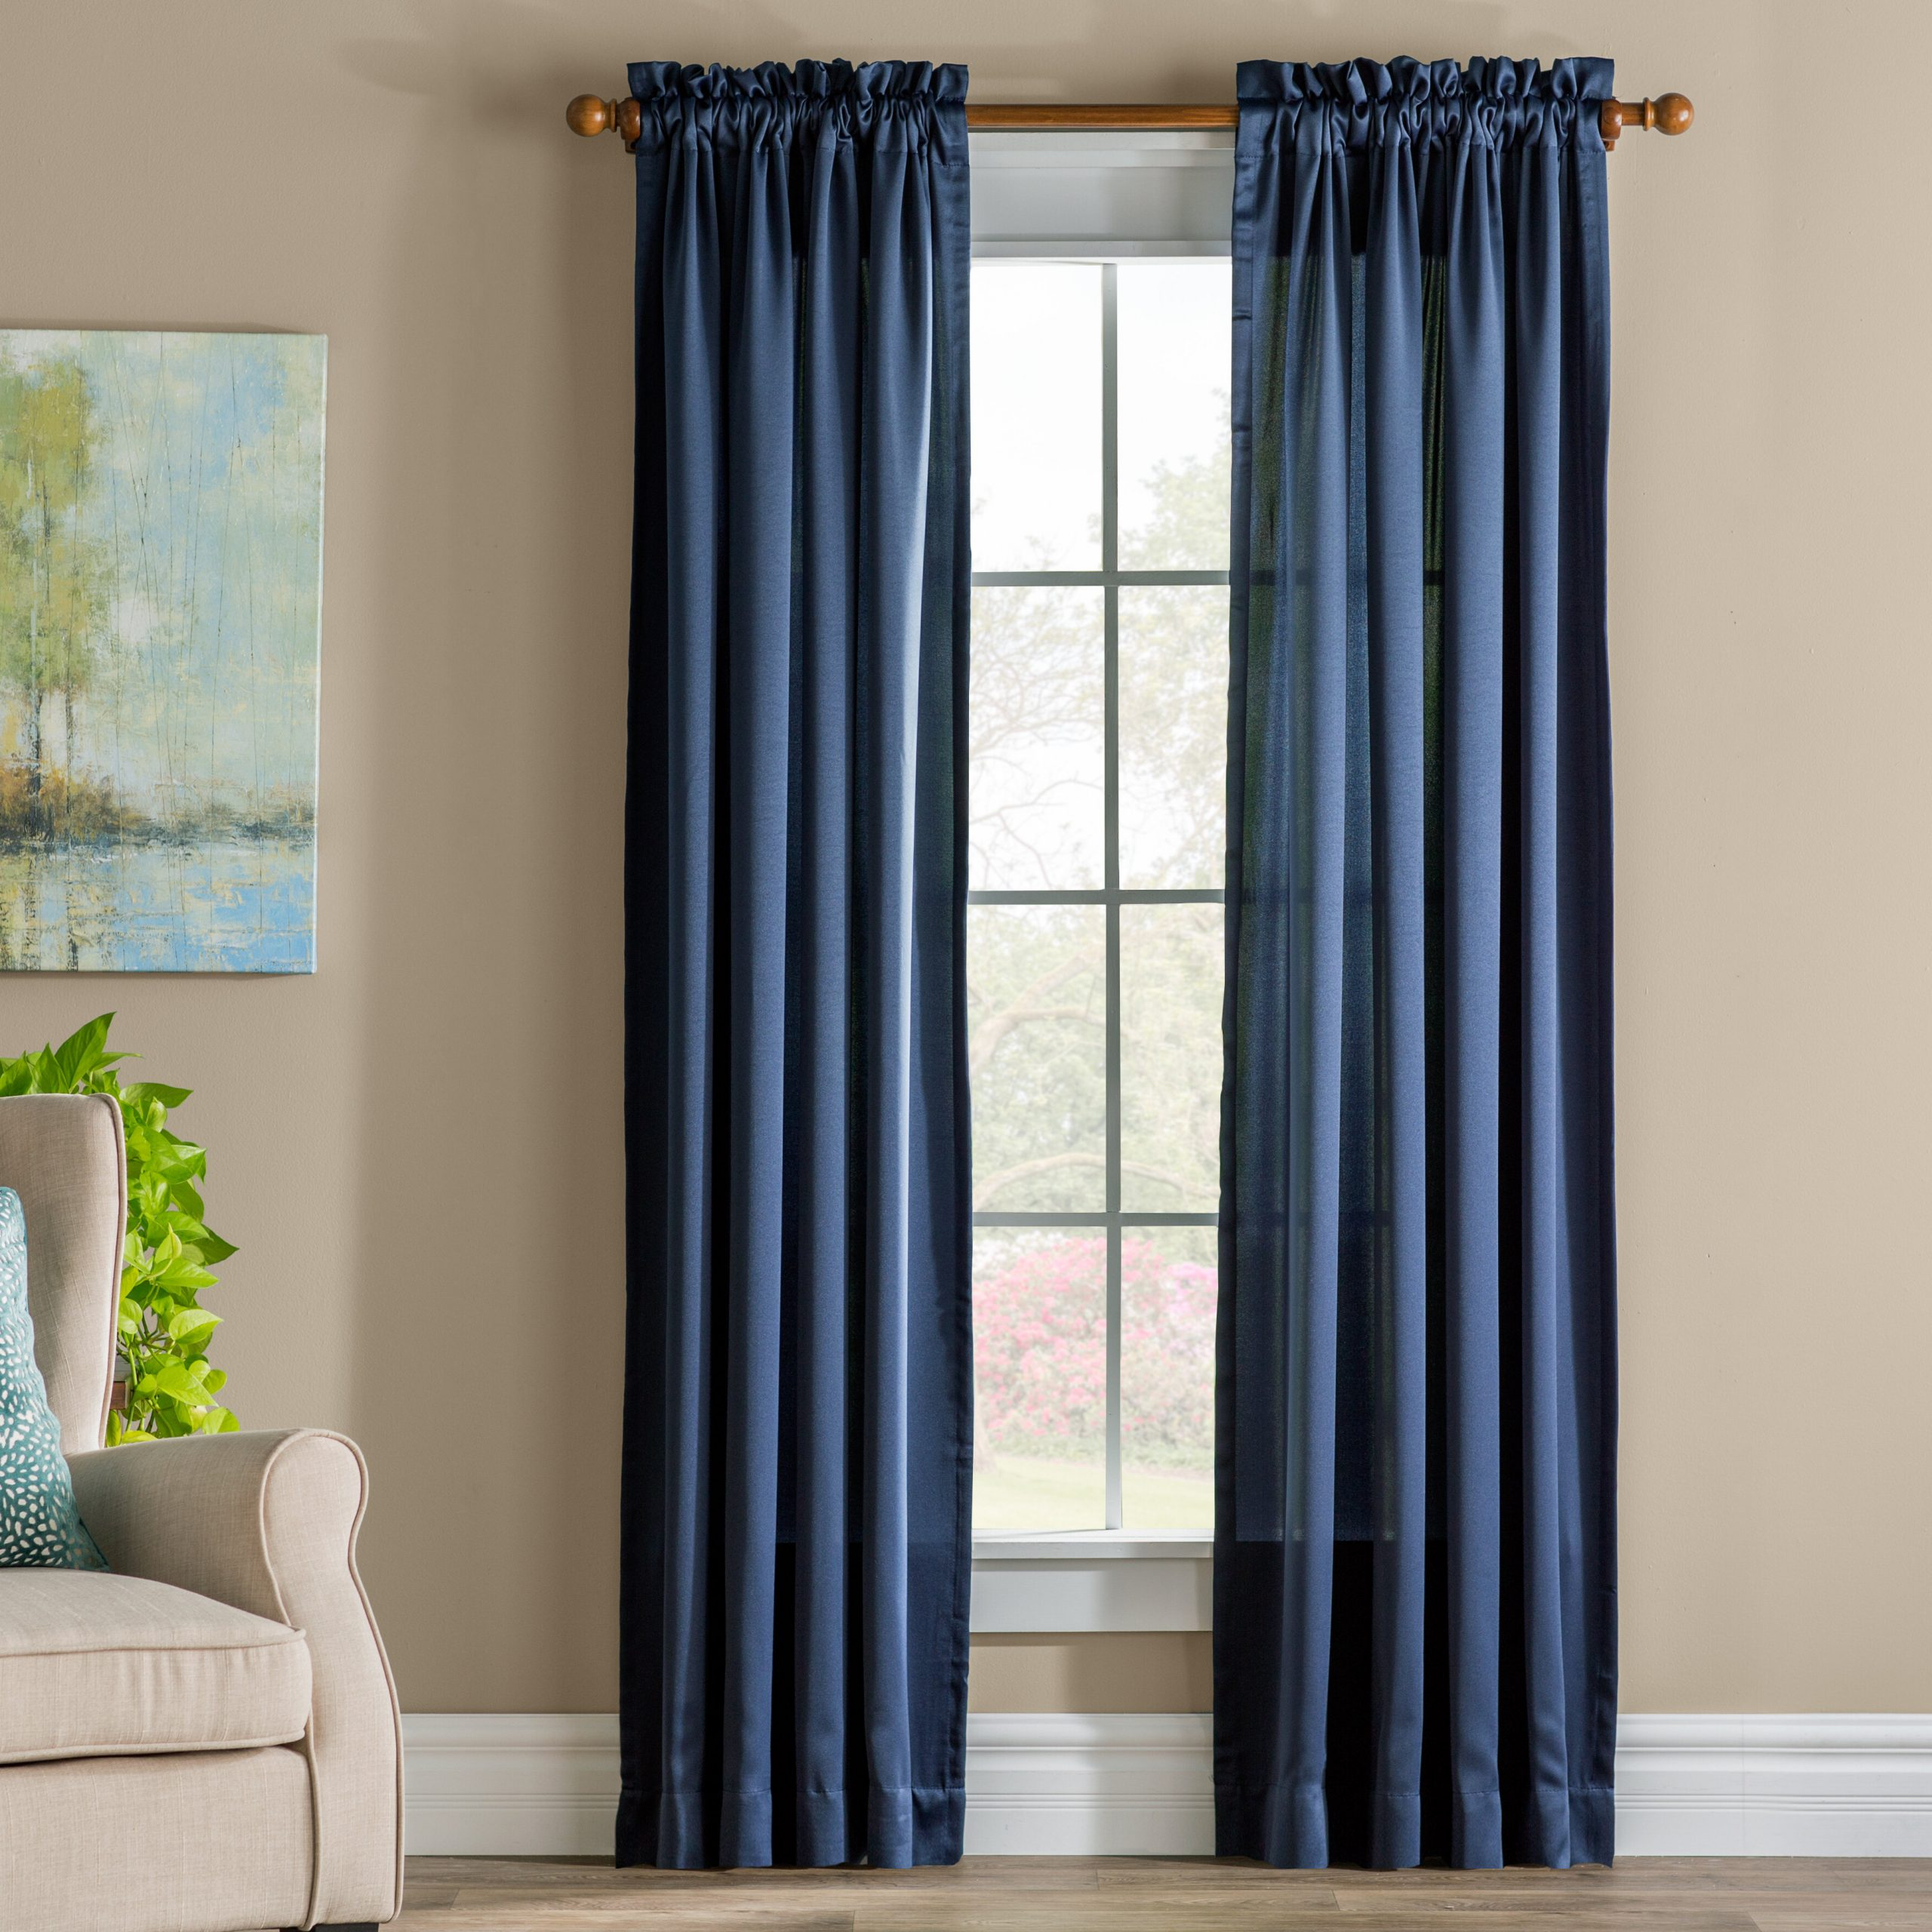 Wayfair With Regard To Widely Used Kaylee Solid Crushed Sheer Window Curtain Pairs (View 19 of 20)